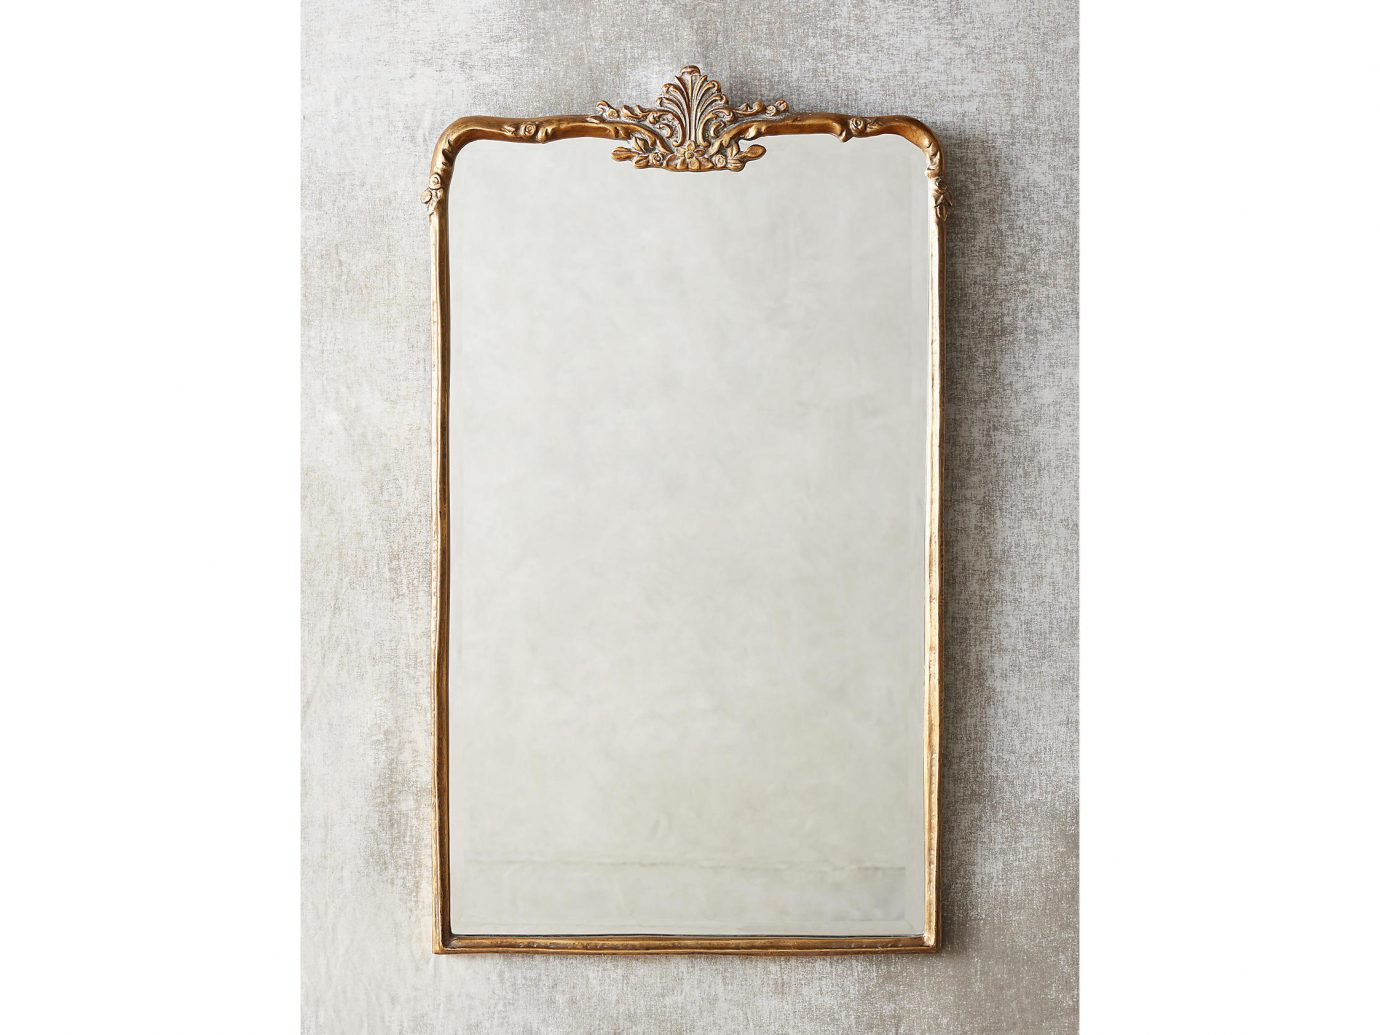 Amsterdam Style + Design The Netherlands Travel Shop indoor rectangle picture frame product design mirror